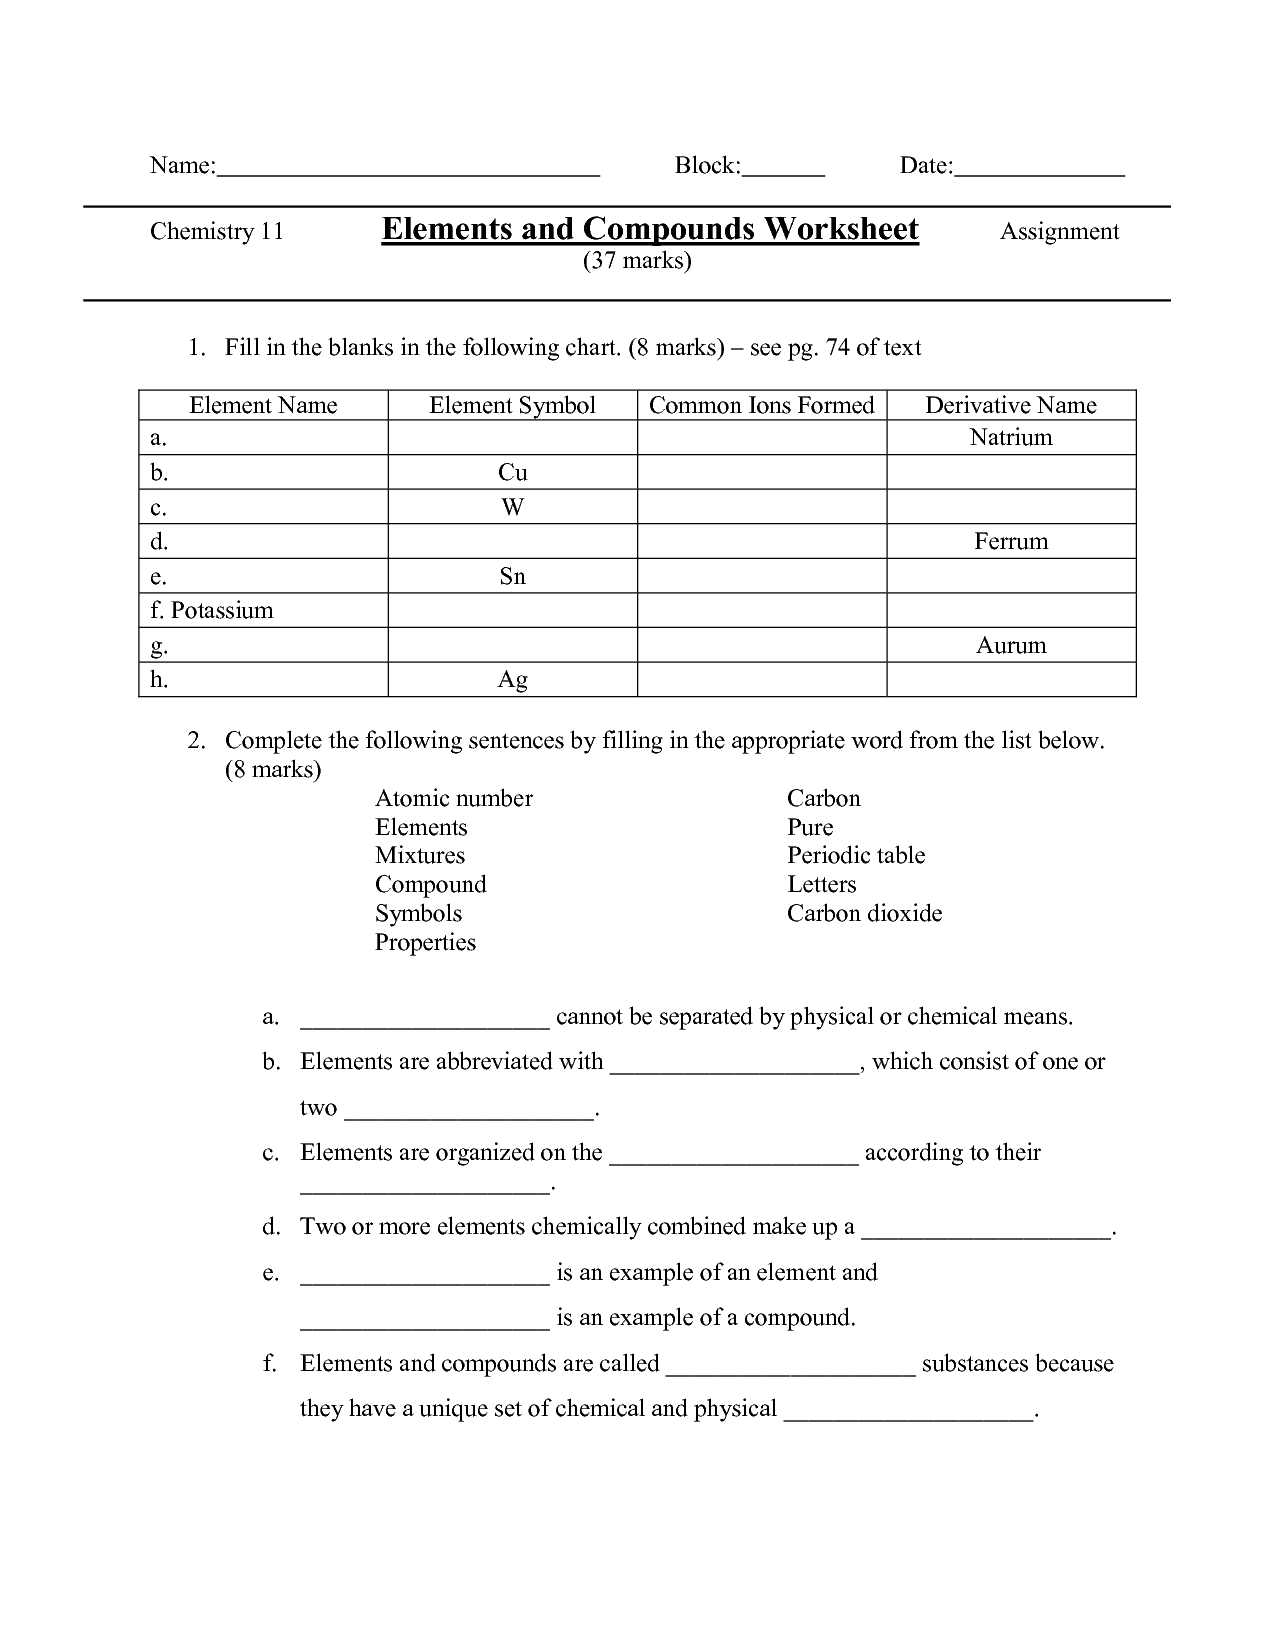 17 Best Images Of Elements Compounds And Mixtures Worksheet Element Compound Mixture Worksheet